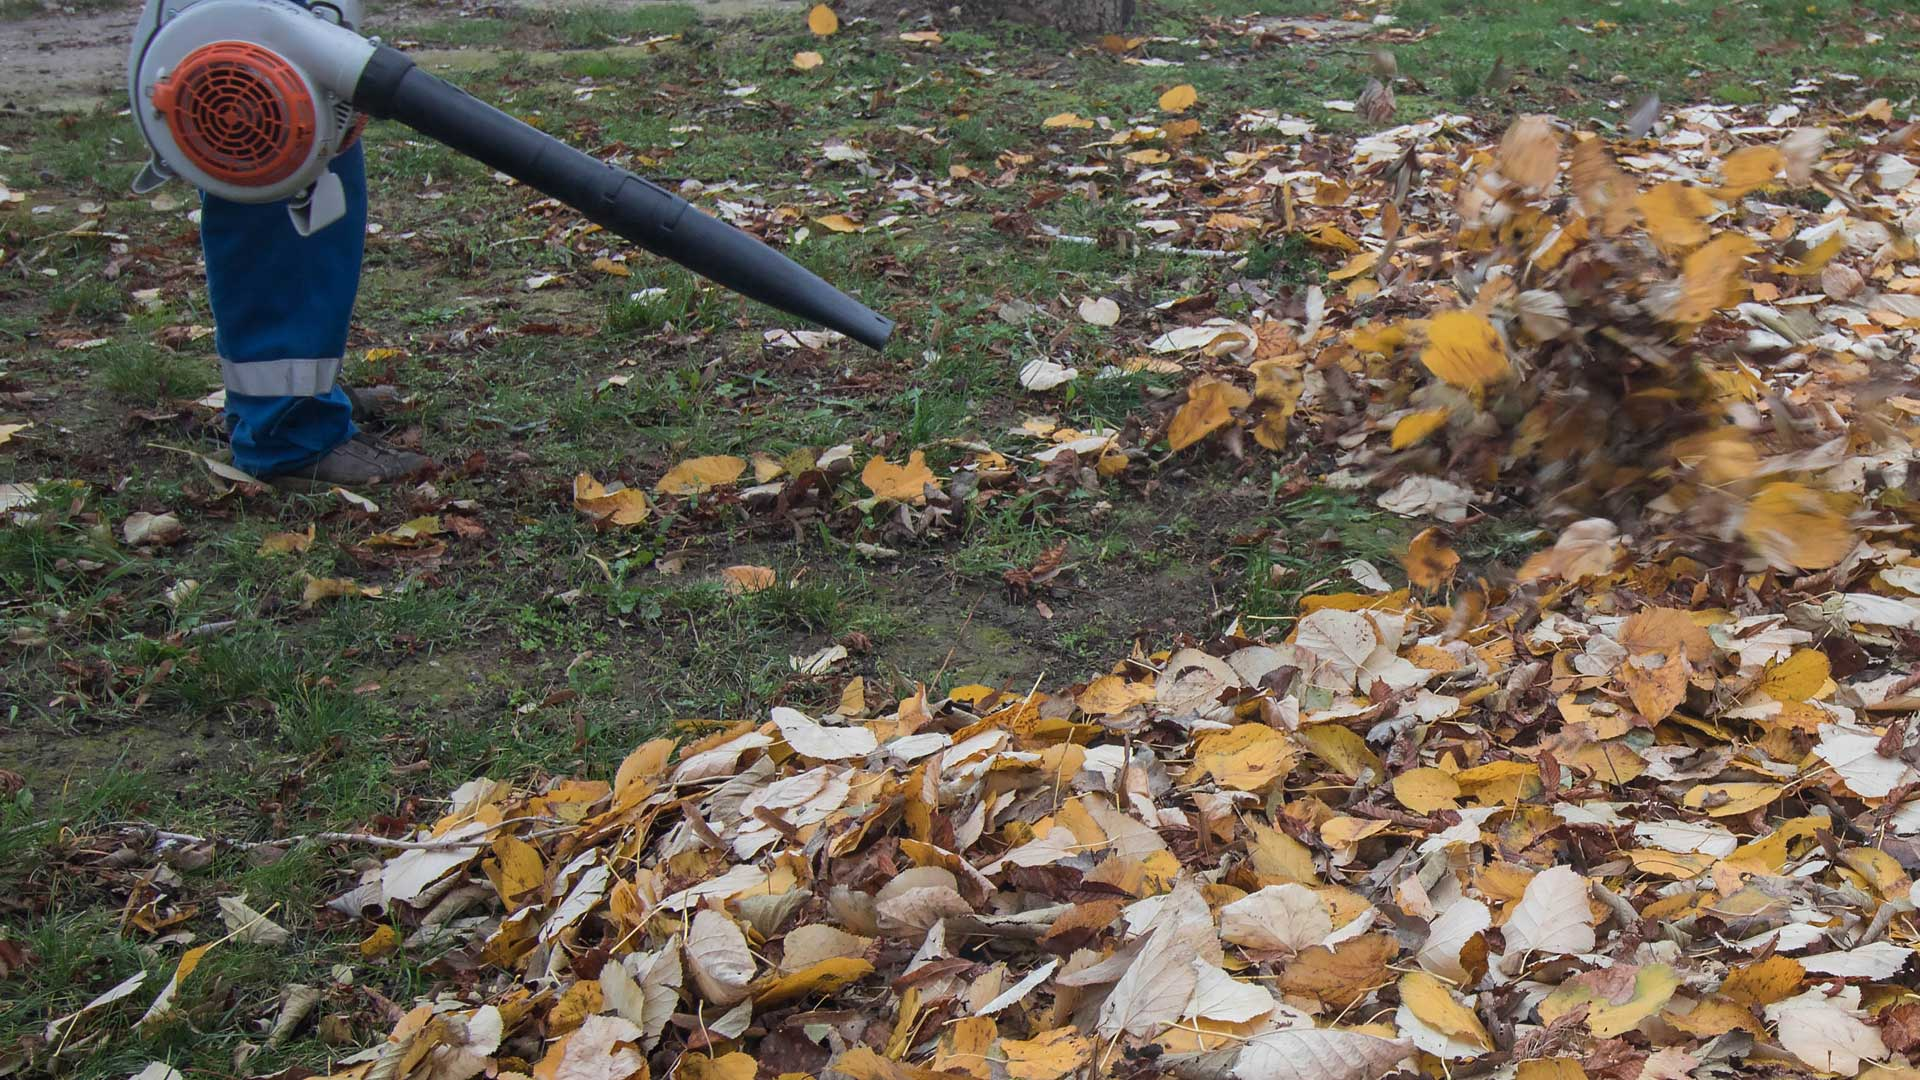 Residential fall yard clean up in Northglenn, CO.